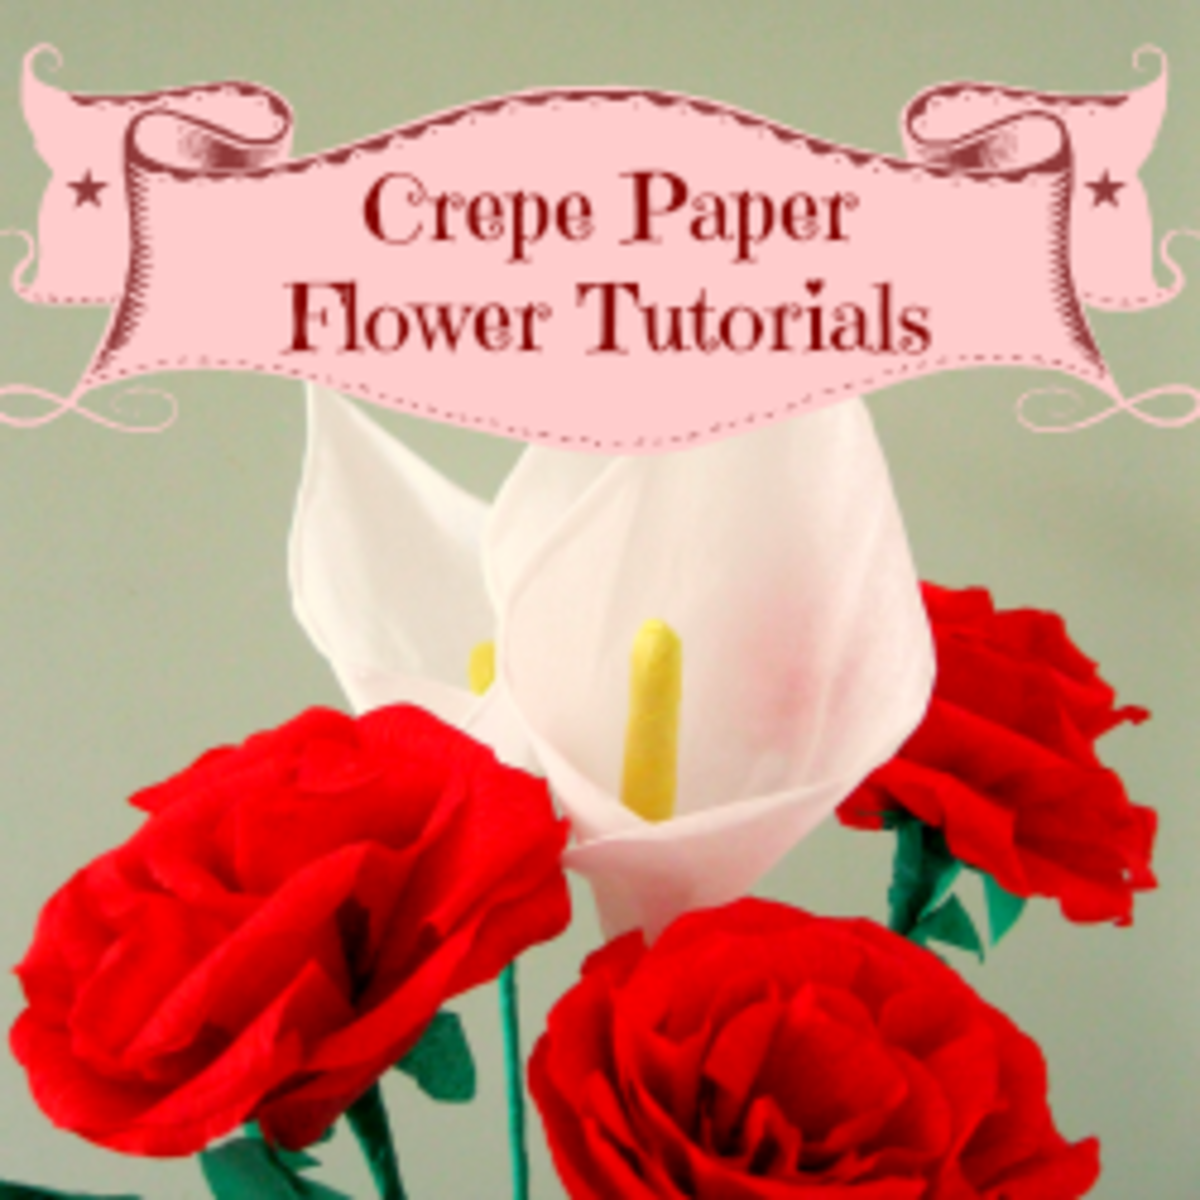 How To Make Crepe Paper Flowers - Step by Step Tutorials